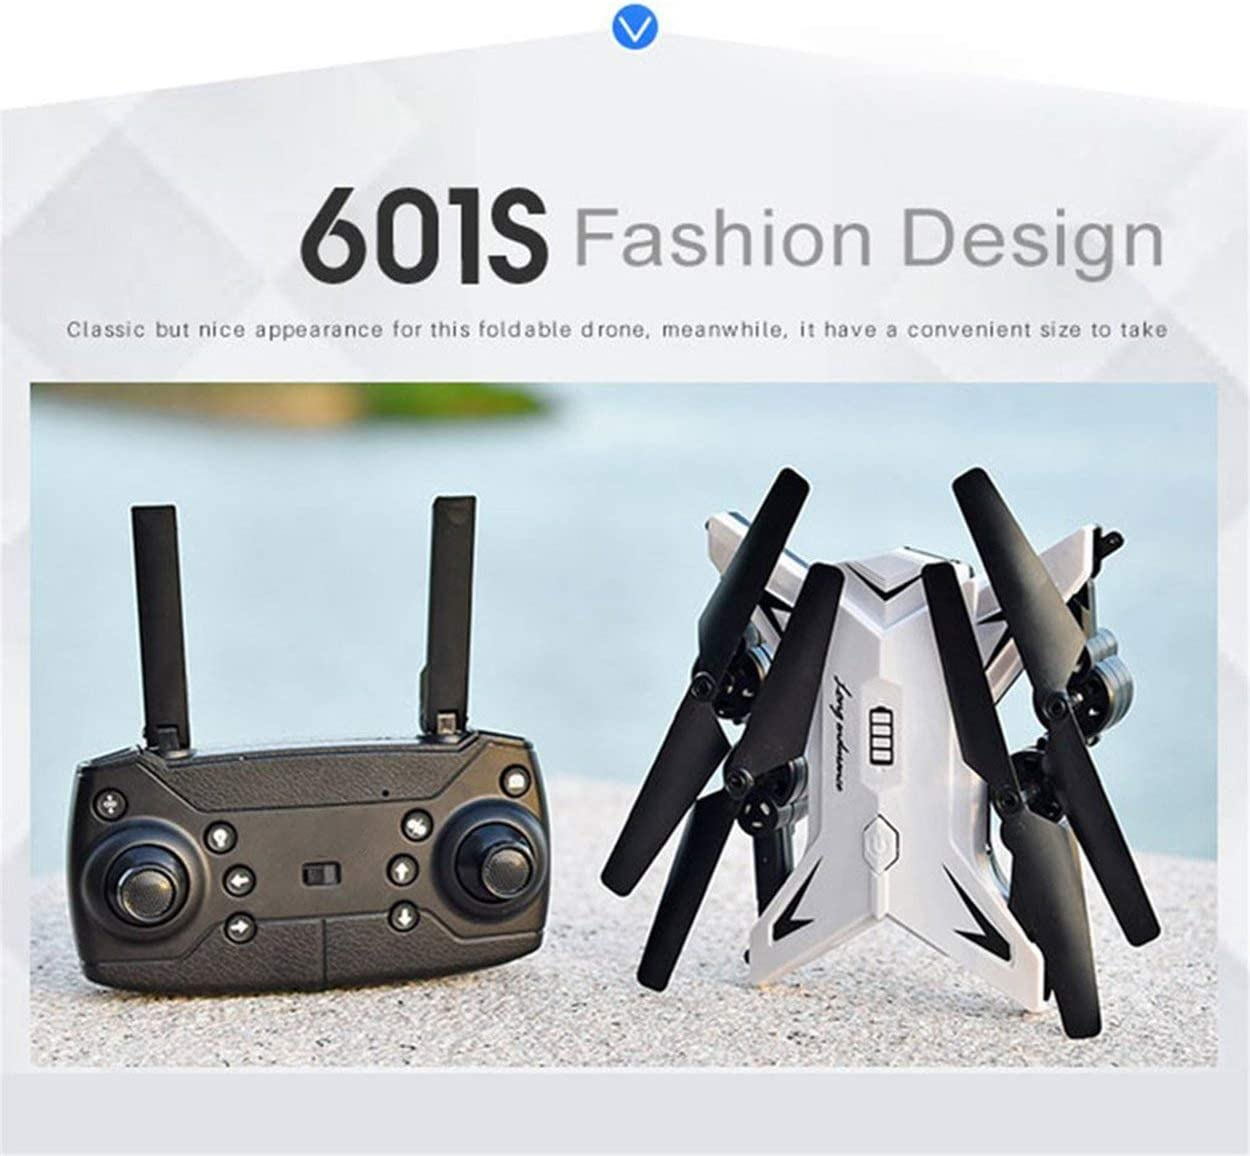 one-Button Return Gravity Sense,Quadcopter Speed Adjustment 20 Minutes Play Time Three Batteies Version Drones Toys with Gravity Sense Headless Mode RC Drones,Aircraft